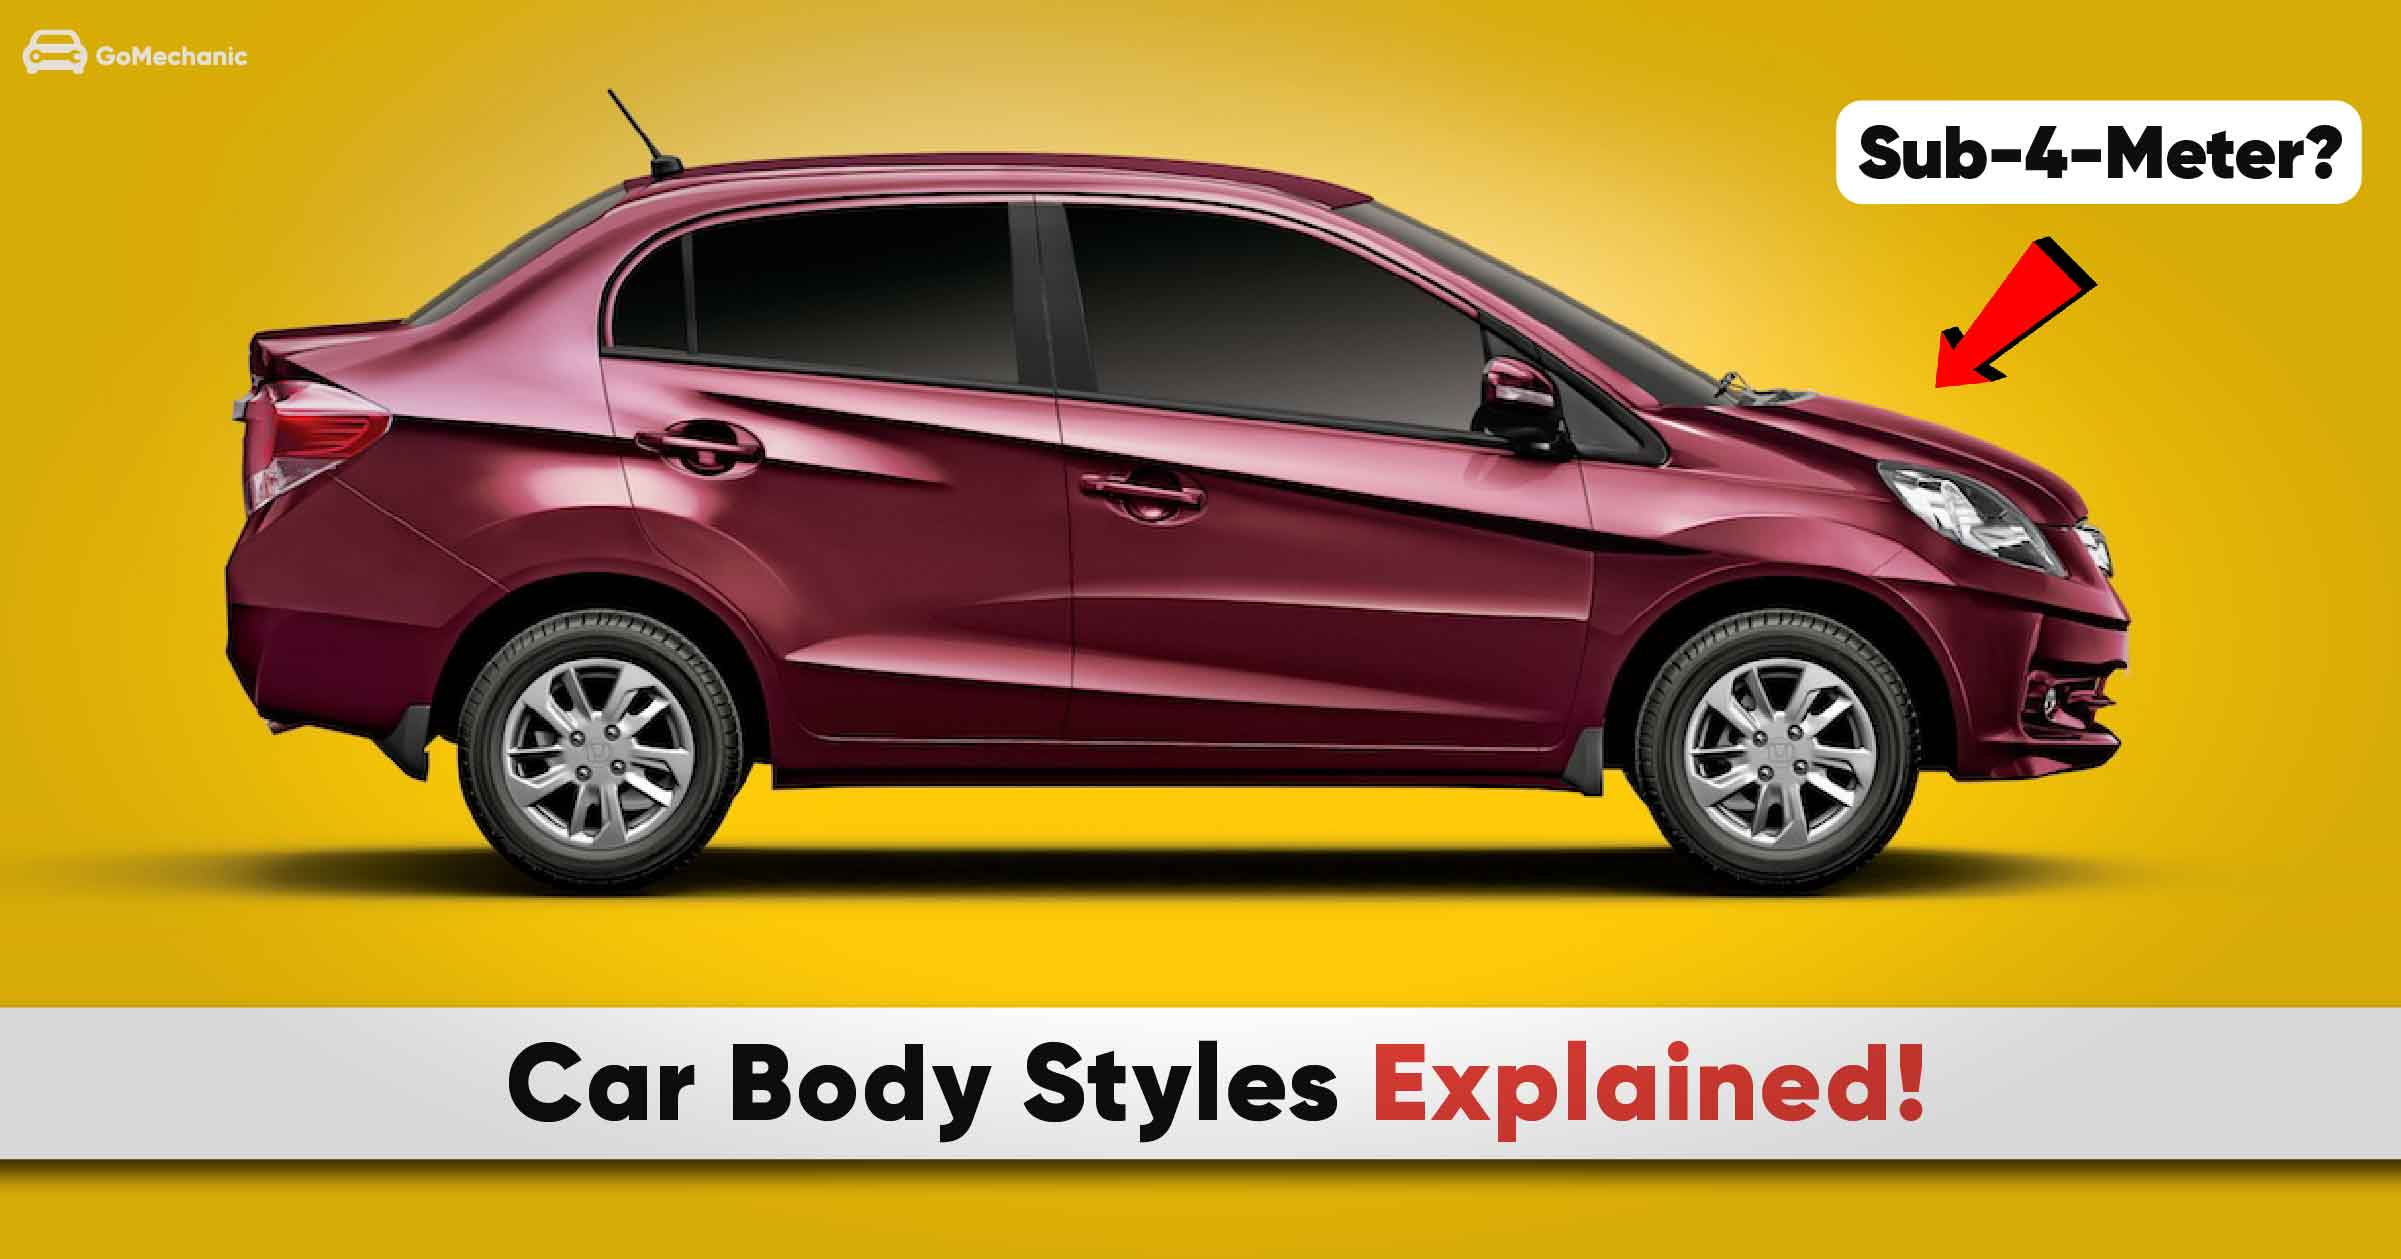 The Different Styles Of Car Body Types Explained